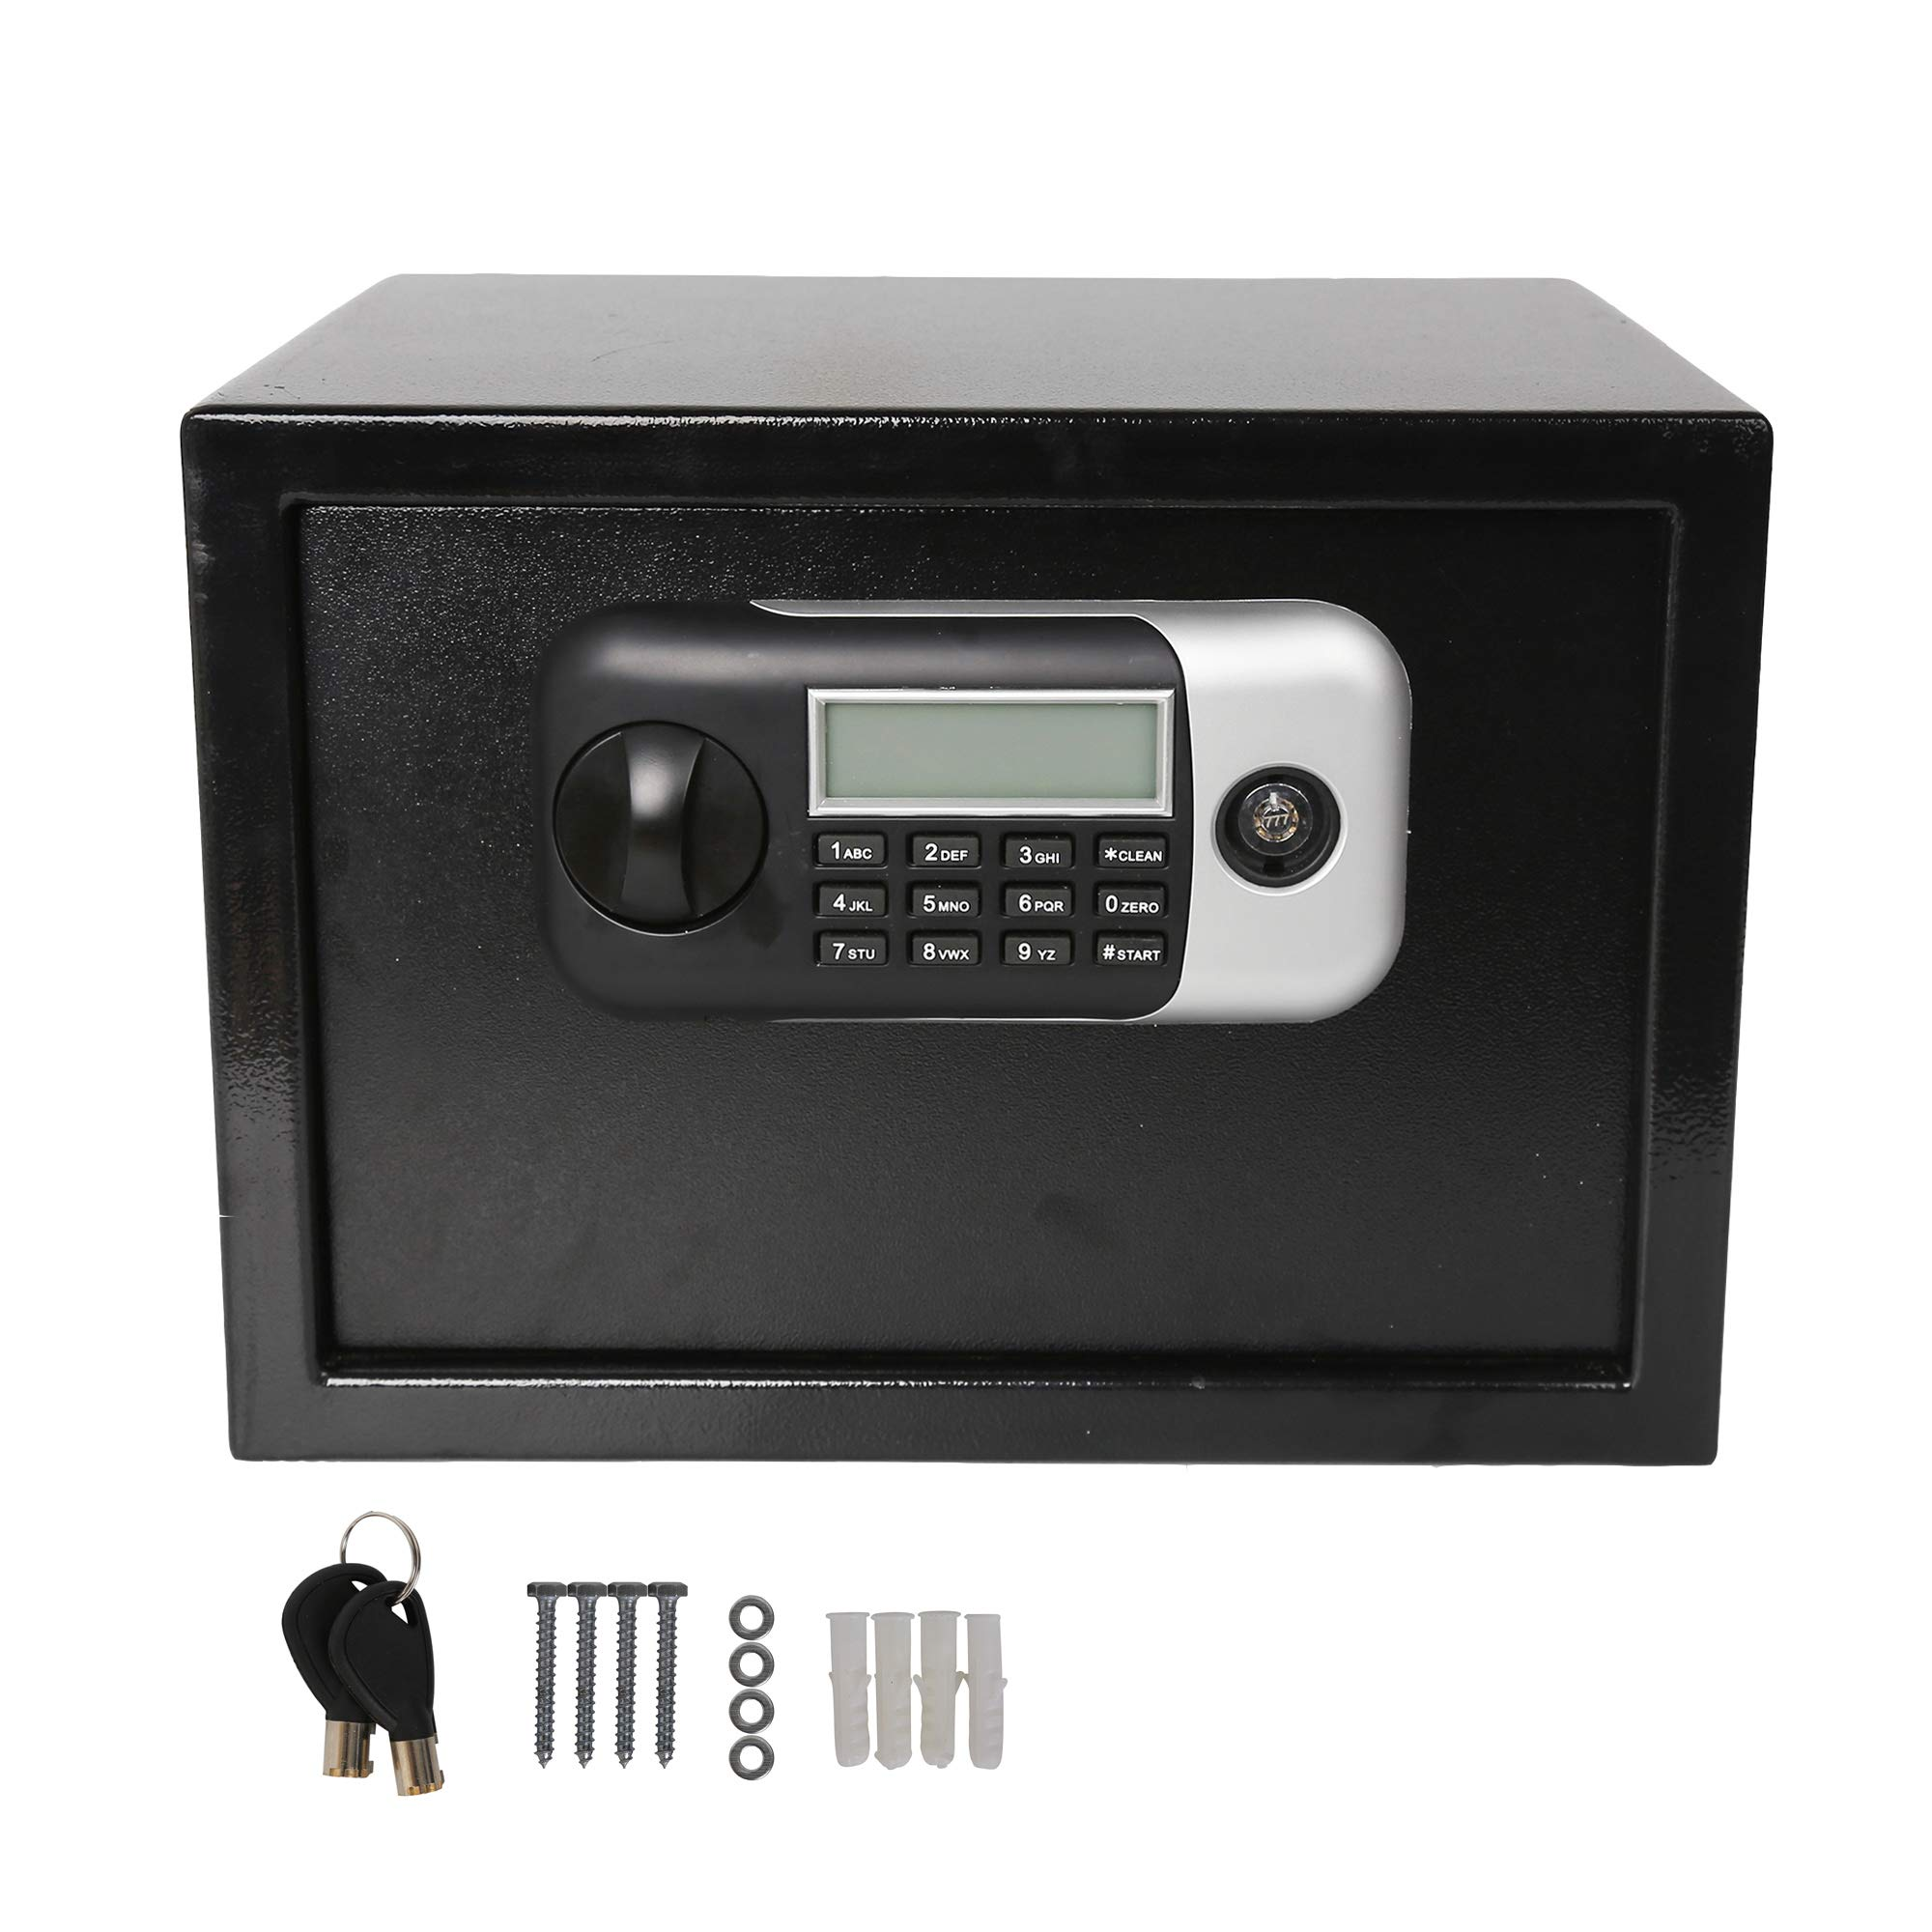 LuckyerMore 0.5CF Electronic Digital Safe Security Lock Box with Key LCD Display Robust Steel Construction for Personal Keep Money Cash or Document Securely